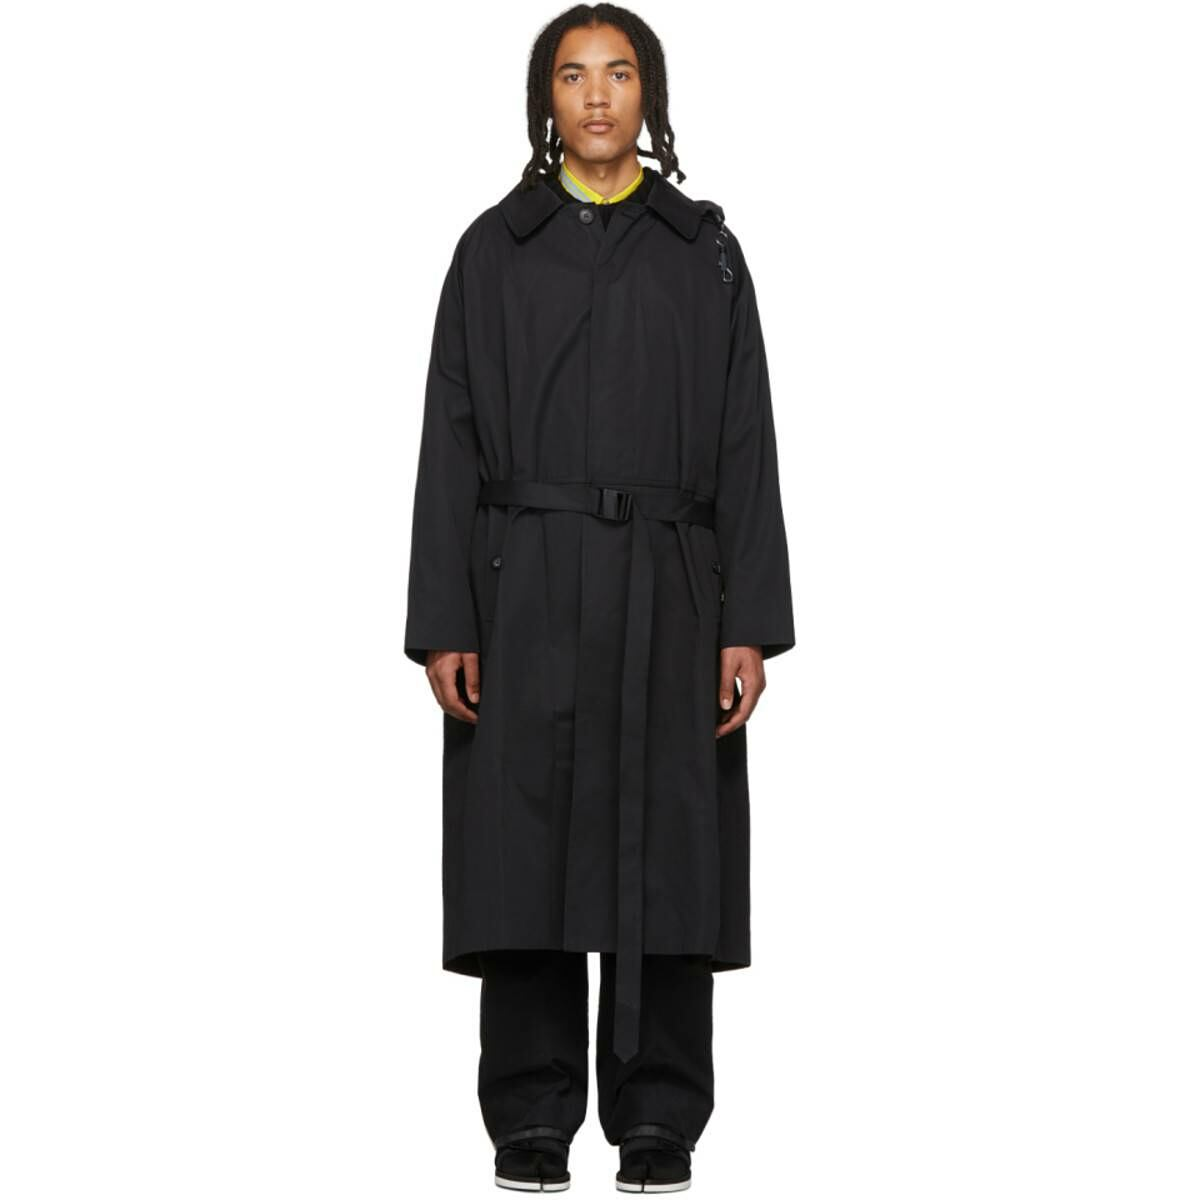 Sankuanz Black Trench Coat Ssense USA MEN Men FASHION Mens COATS